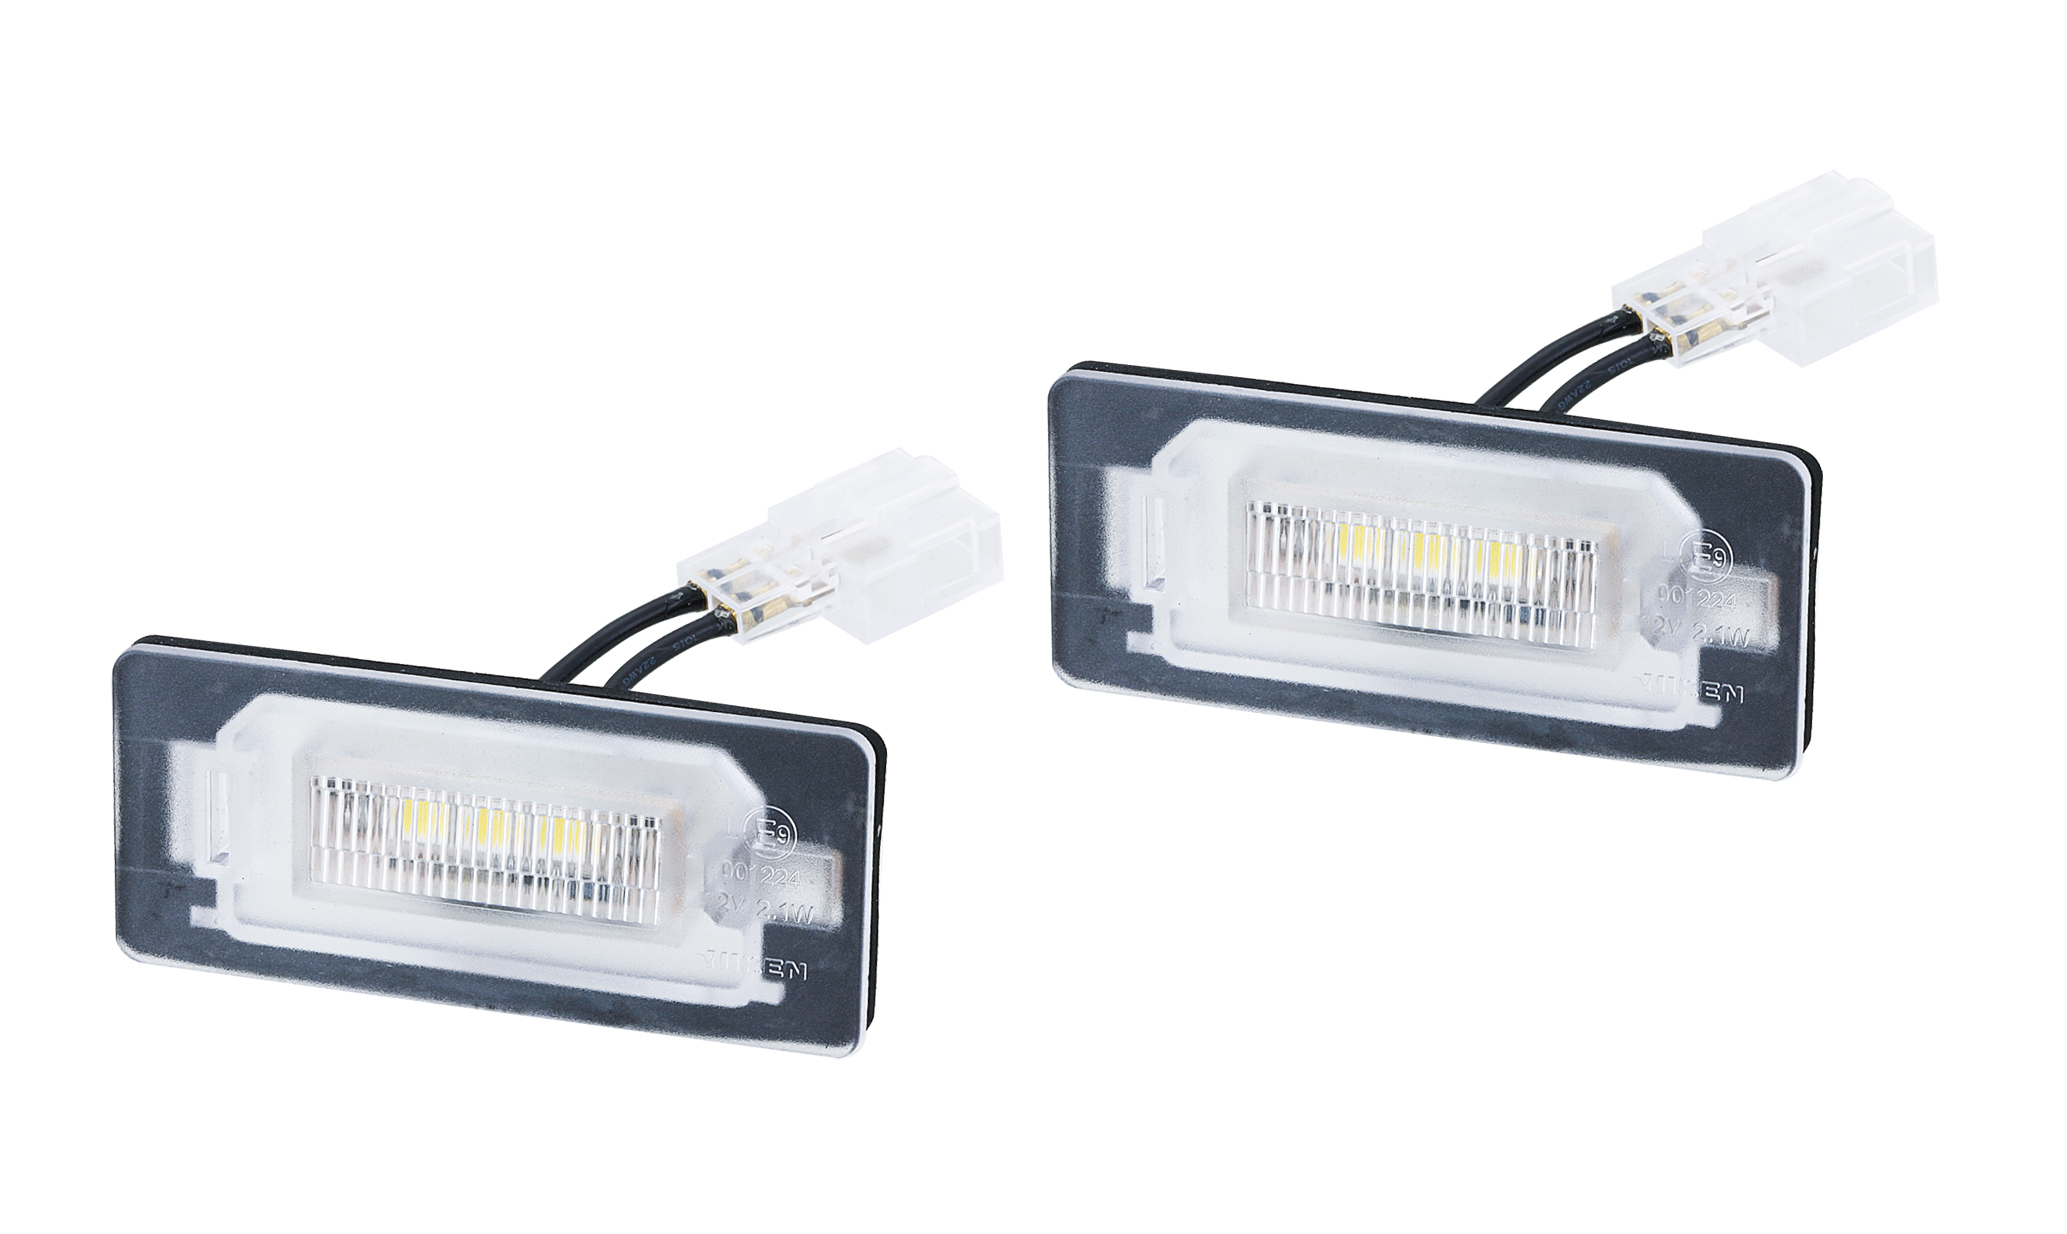 Truck / Trailer / Heavy Duty LED License Lamp for Lighting Series made by NIKEN Vehicle Lighting Co., LTD. 首通股份有限公司 - MatchSupplier.com